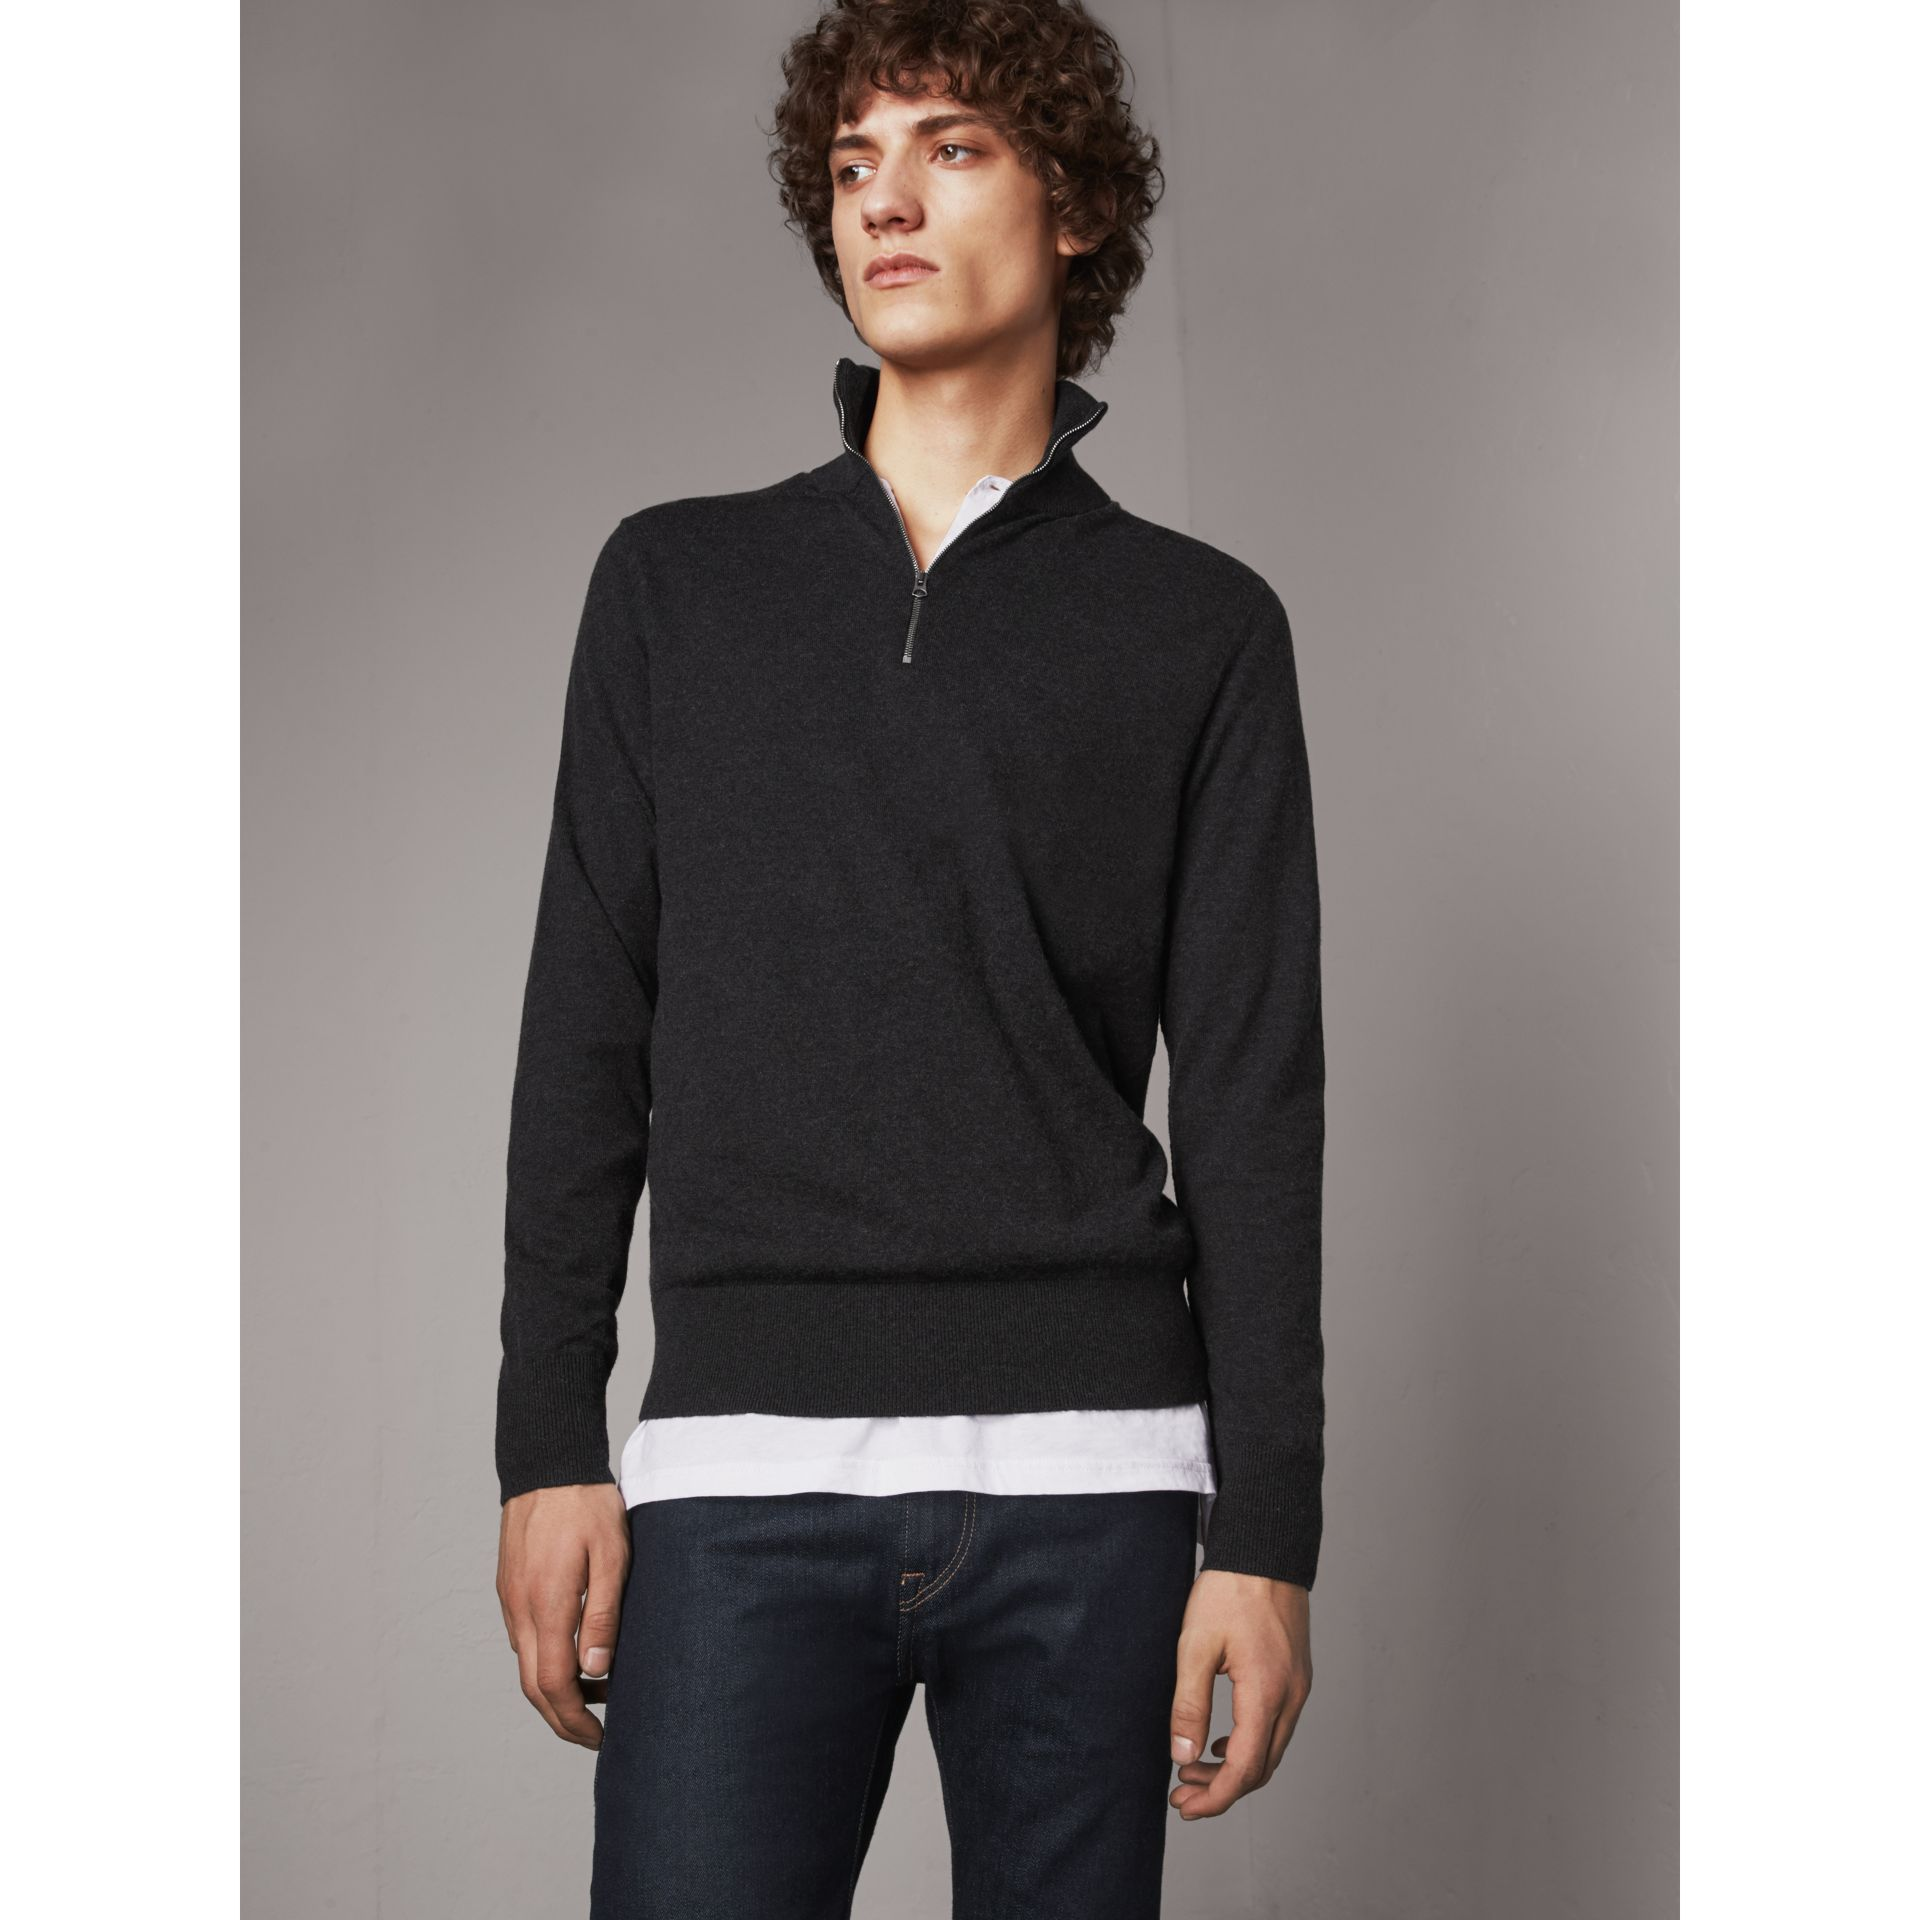 Zip-neck Cashmere Cotton Sweater in Charcoal - Men | Burberry - gallery image 1